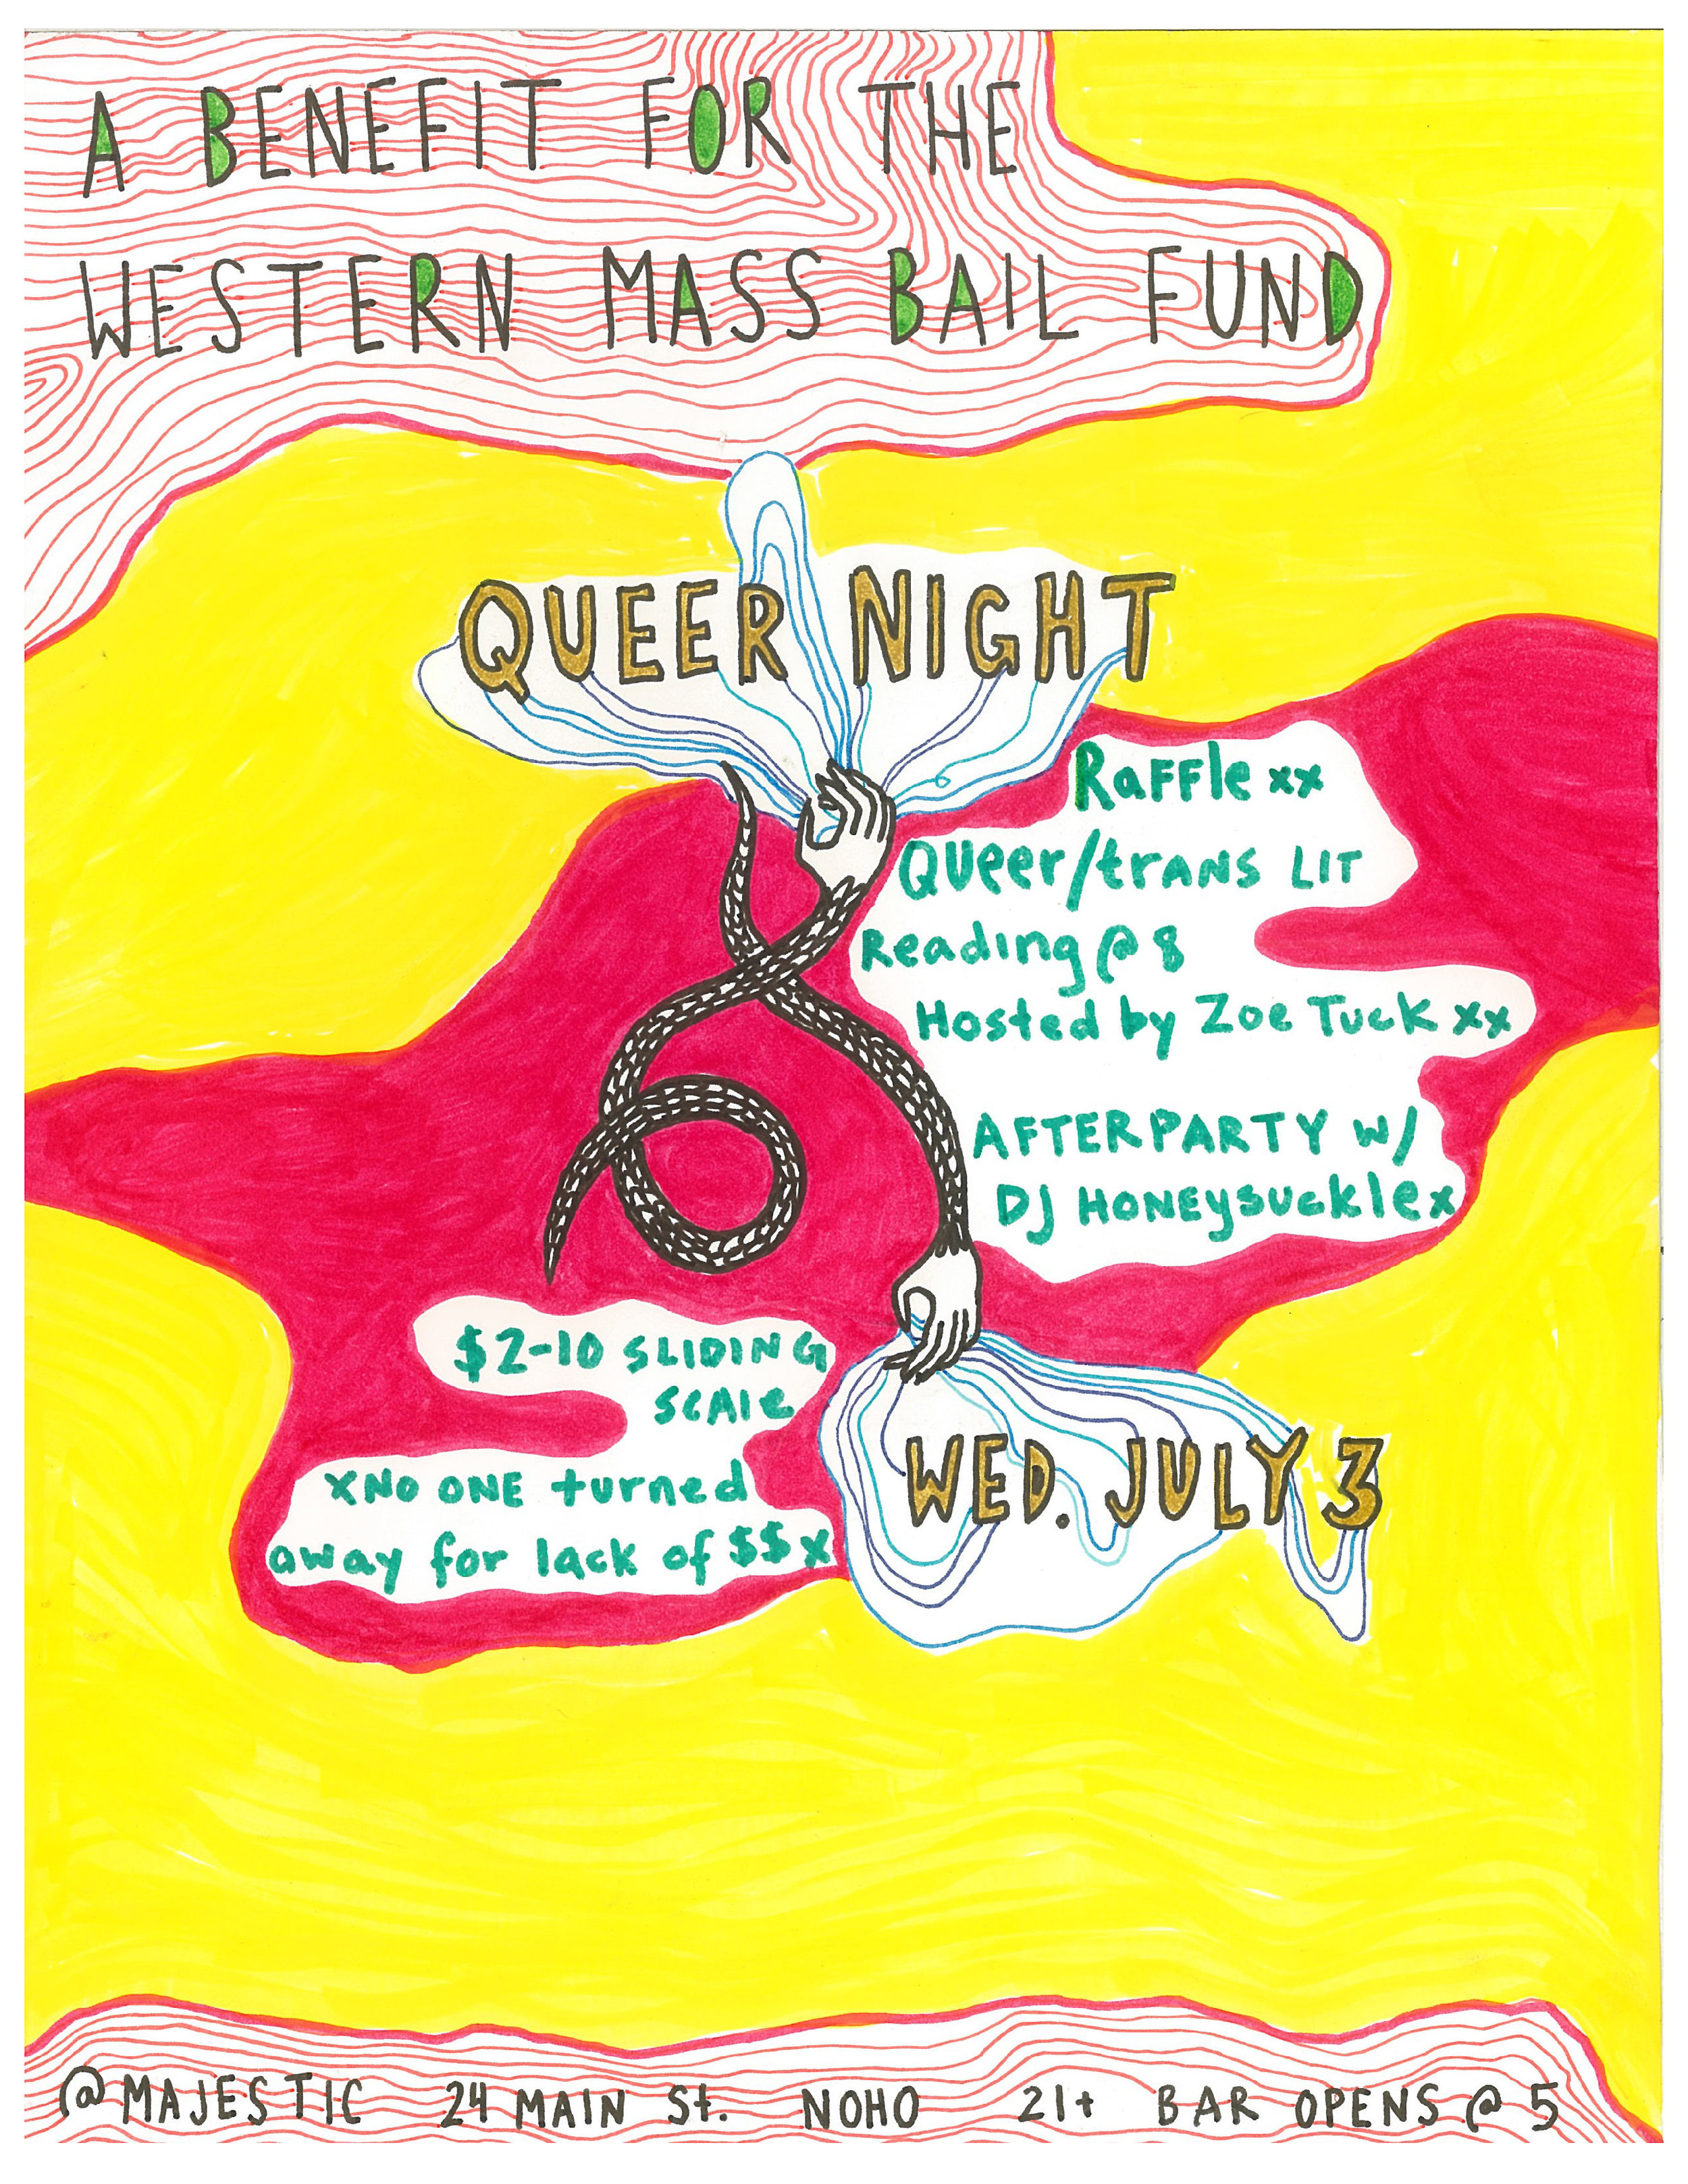 *BRING UR FRIENDS, BRING UR EX, BRING UR MOM*  Please join us at your weekly pop-up gay bar for a nerdy and fun night in support of the Western Massachusetts Bail Fund (info about the Fund at the bottom of description):  ALL NIGHT: A raffle/fundraiser featuring donated gifts from a variety of local business. Offerings TBA. We will also continue our free in-house bring a book/take a book library at 5.  8PM: An evening of queer and trans poetry and literature hosted and curated by Zoe Tuck ( www.zoetuck.com ). Featuring readings by: ANDREA LAWLOR, CAMERON AWKWARD-RICH, EMILY HUNERWADEL, MARÍA JOSÉ GIMENEZ, and ZOE TUCK.   AFTER DARK: A fresh and fruity dance party to the sounds of DJ HONEYSUCKLE.  $2-10 suggested donation // no one turned away for lack of $$$  ***  (what is it) a weekly pop-up gay bar featuring queer humans/art/music/food/magic  (why is it) because there isnt one  (where is it) the majestic saloon, downtown northampton  (when is it) july 3 and every wednesday forever  16 taps of beer/cheap cans/good wine/pretty and pink mocktails and specialty drinks featuring fresh cold-pressed juice from Iconica Social Club.  Bullshit will not be tolerated xoxo  Majestic is fully wheelchair accessible, with ramps to entrance and a chair accessible, gender-neutral, single occupancy bathroom.  *BOOKING POETS/BANDS/DJS/DRAG SHOWS/TAROT READERS/VIDEO ARTISTS/YR GAY IDEAS xxx COME BY AND PITCH US YOUR THING*  and follow us on instagram at @popupgaybar   xxxxxxxxxxxxxxxxxxxxxxxxxxxx  ABOUT THE WESTERN MASSACHUSETTS BAIL FUND:  Did you know: If the system of cash bail ended right now, approximately 536,000 people in the U.S. would not be in jail tonight (Prison Policy Initiative, 3/18).  Cash bail exists simply to ensure that people who have been arrested show up at their next court dates. People with money can afford bail and are released almost immediately. Poor defendants can't afford bail, so the system simply holds them in jail until their case. This can take weeks, months, or even years.  The Western Mass Prison Abolition Network has helped to open a local bail fund with the Massachusetts Bail Fund (MBF) last June; that fund has meant release for about 20 people each month held on up to $500 bails in Hampshire, Hampden, and Franklin Counties.  These defendants have not been proven guilty of any crime. In fact, over 50% of all Massachusetts Bail Fund clients have their cases dismissed. In a money bail system, those too poor to afford bail spend time in jail simply because they are poor.  Pretrial incarceration has disastrous impacts on the lives of the incarcerated.  This is exactly why it is not only important that we post bail for folks who can't afford it, but also that we expand our services to provide ongoing care in whatever ways we can. Namely, we're putting together support backpacks– filled with basic essentials like food, toiletries, and materials on where to find other aid/resources– for bail fund clients. We hope to ease people's transitions back into daily life after such a significant, often traumatic, disruption.       Wednesday, July 3, 2019 at 5 PM – 1 AM     The Majestic Saloon     24 Main St, Northampton, Massachusetts 01060